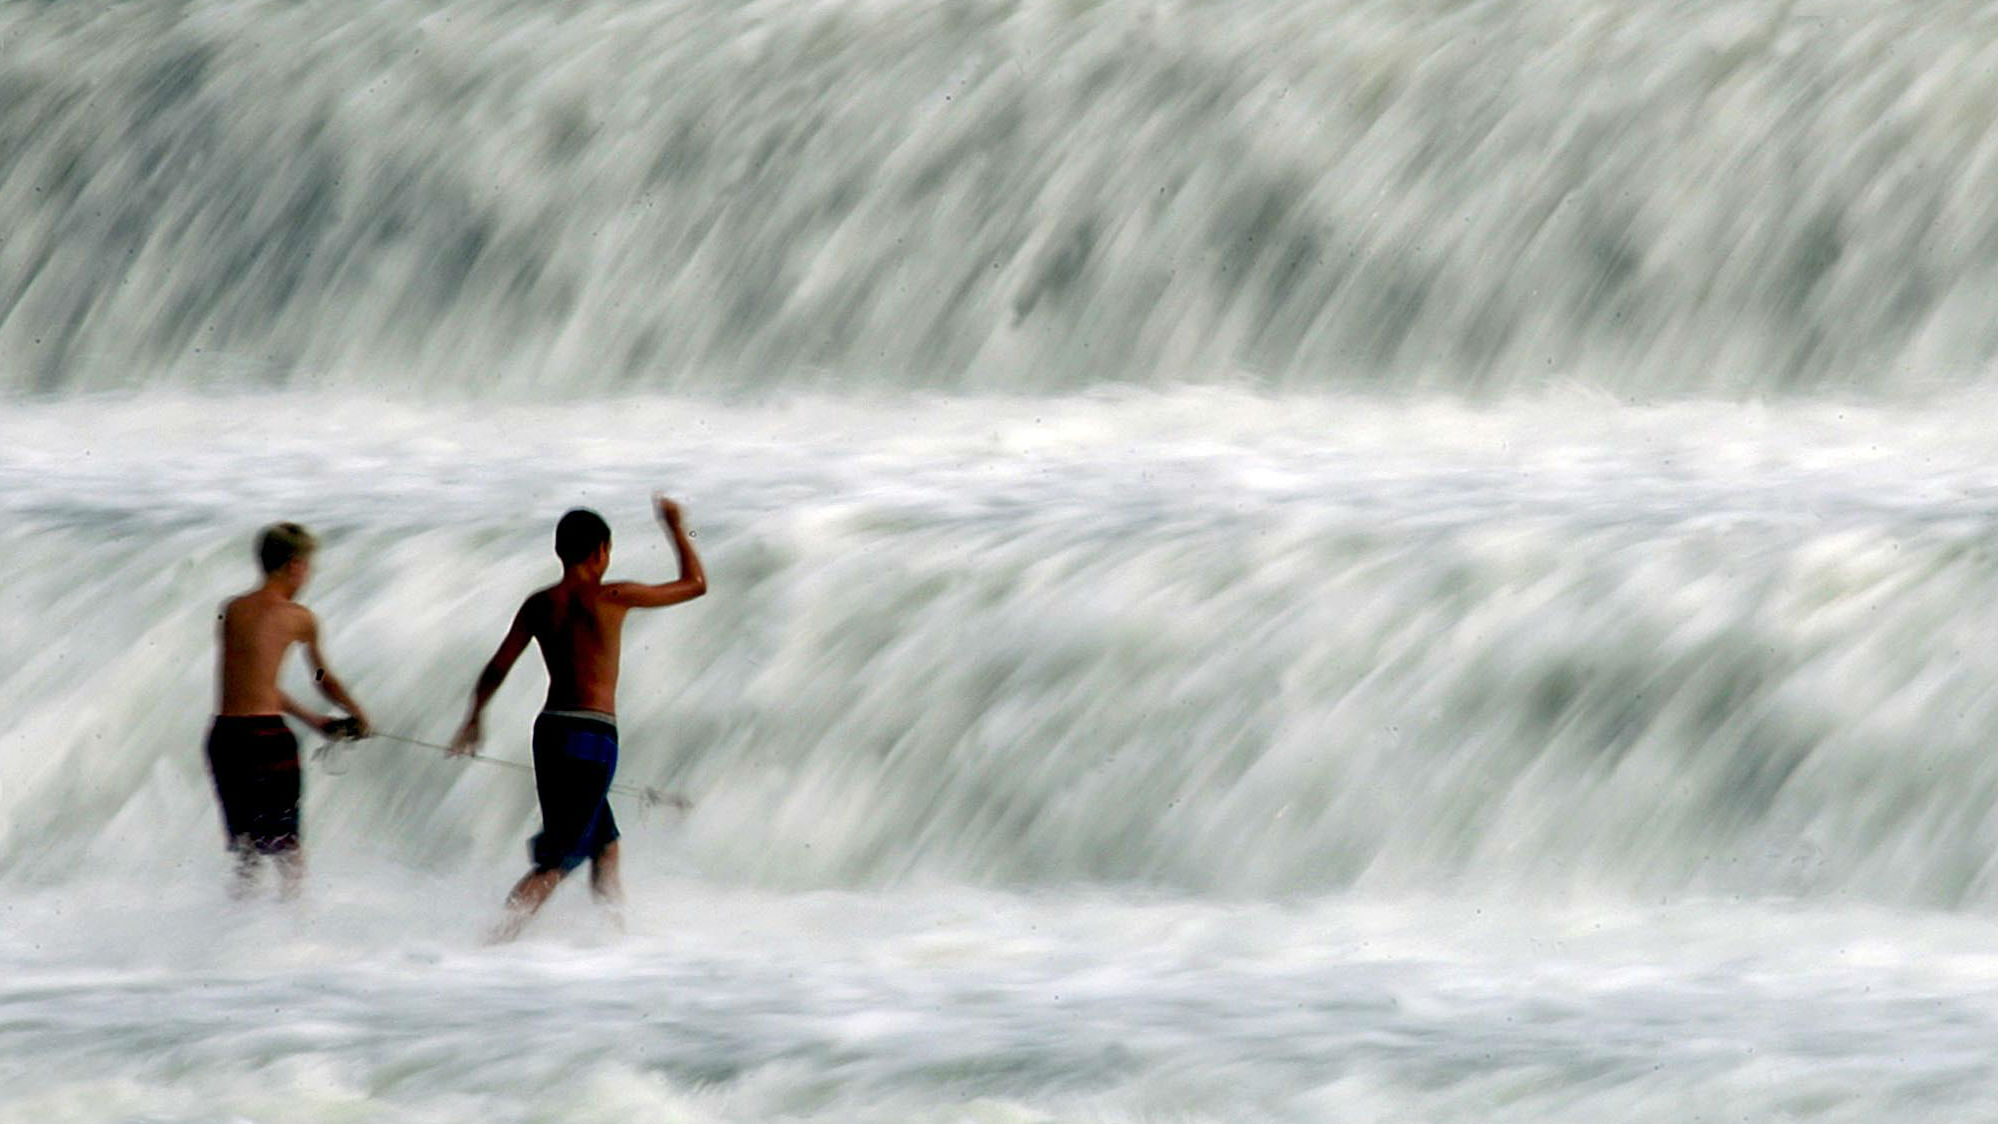 """Two boys play in a waterfall of the Lech river, called """"Lech falls"""", in the south Bavarian town of Landsberg, about 50 km west of Munich August 26, 2003. Mild summer weather has warmed southern Germany with temperatures around 25-30 degrees Celsius."""